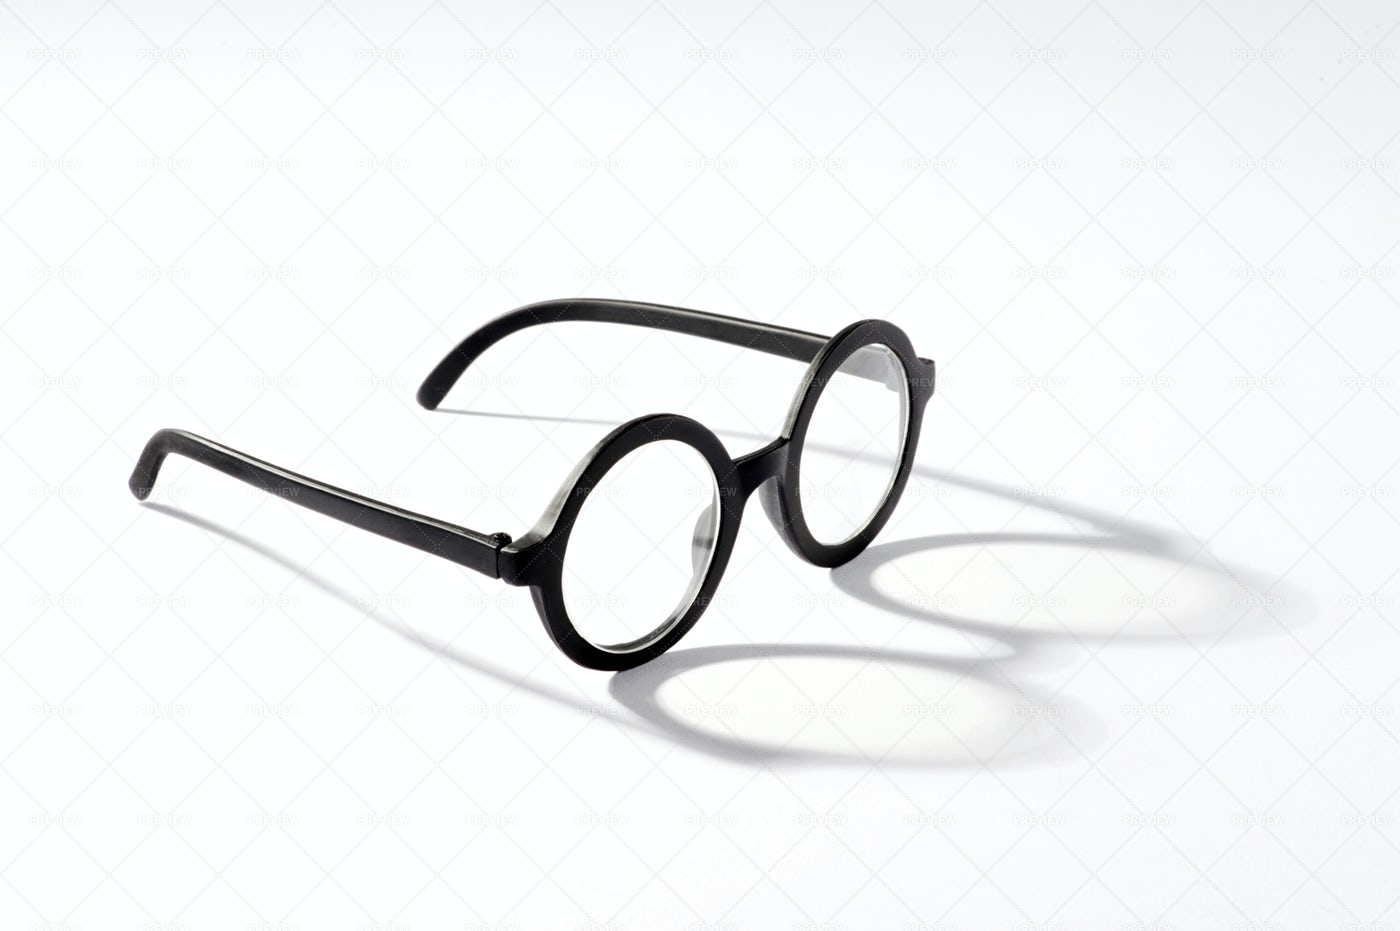 Round Glasses With Shadow: Stock Photos